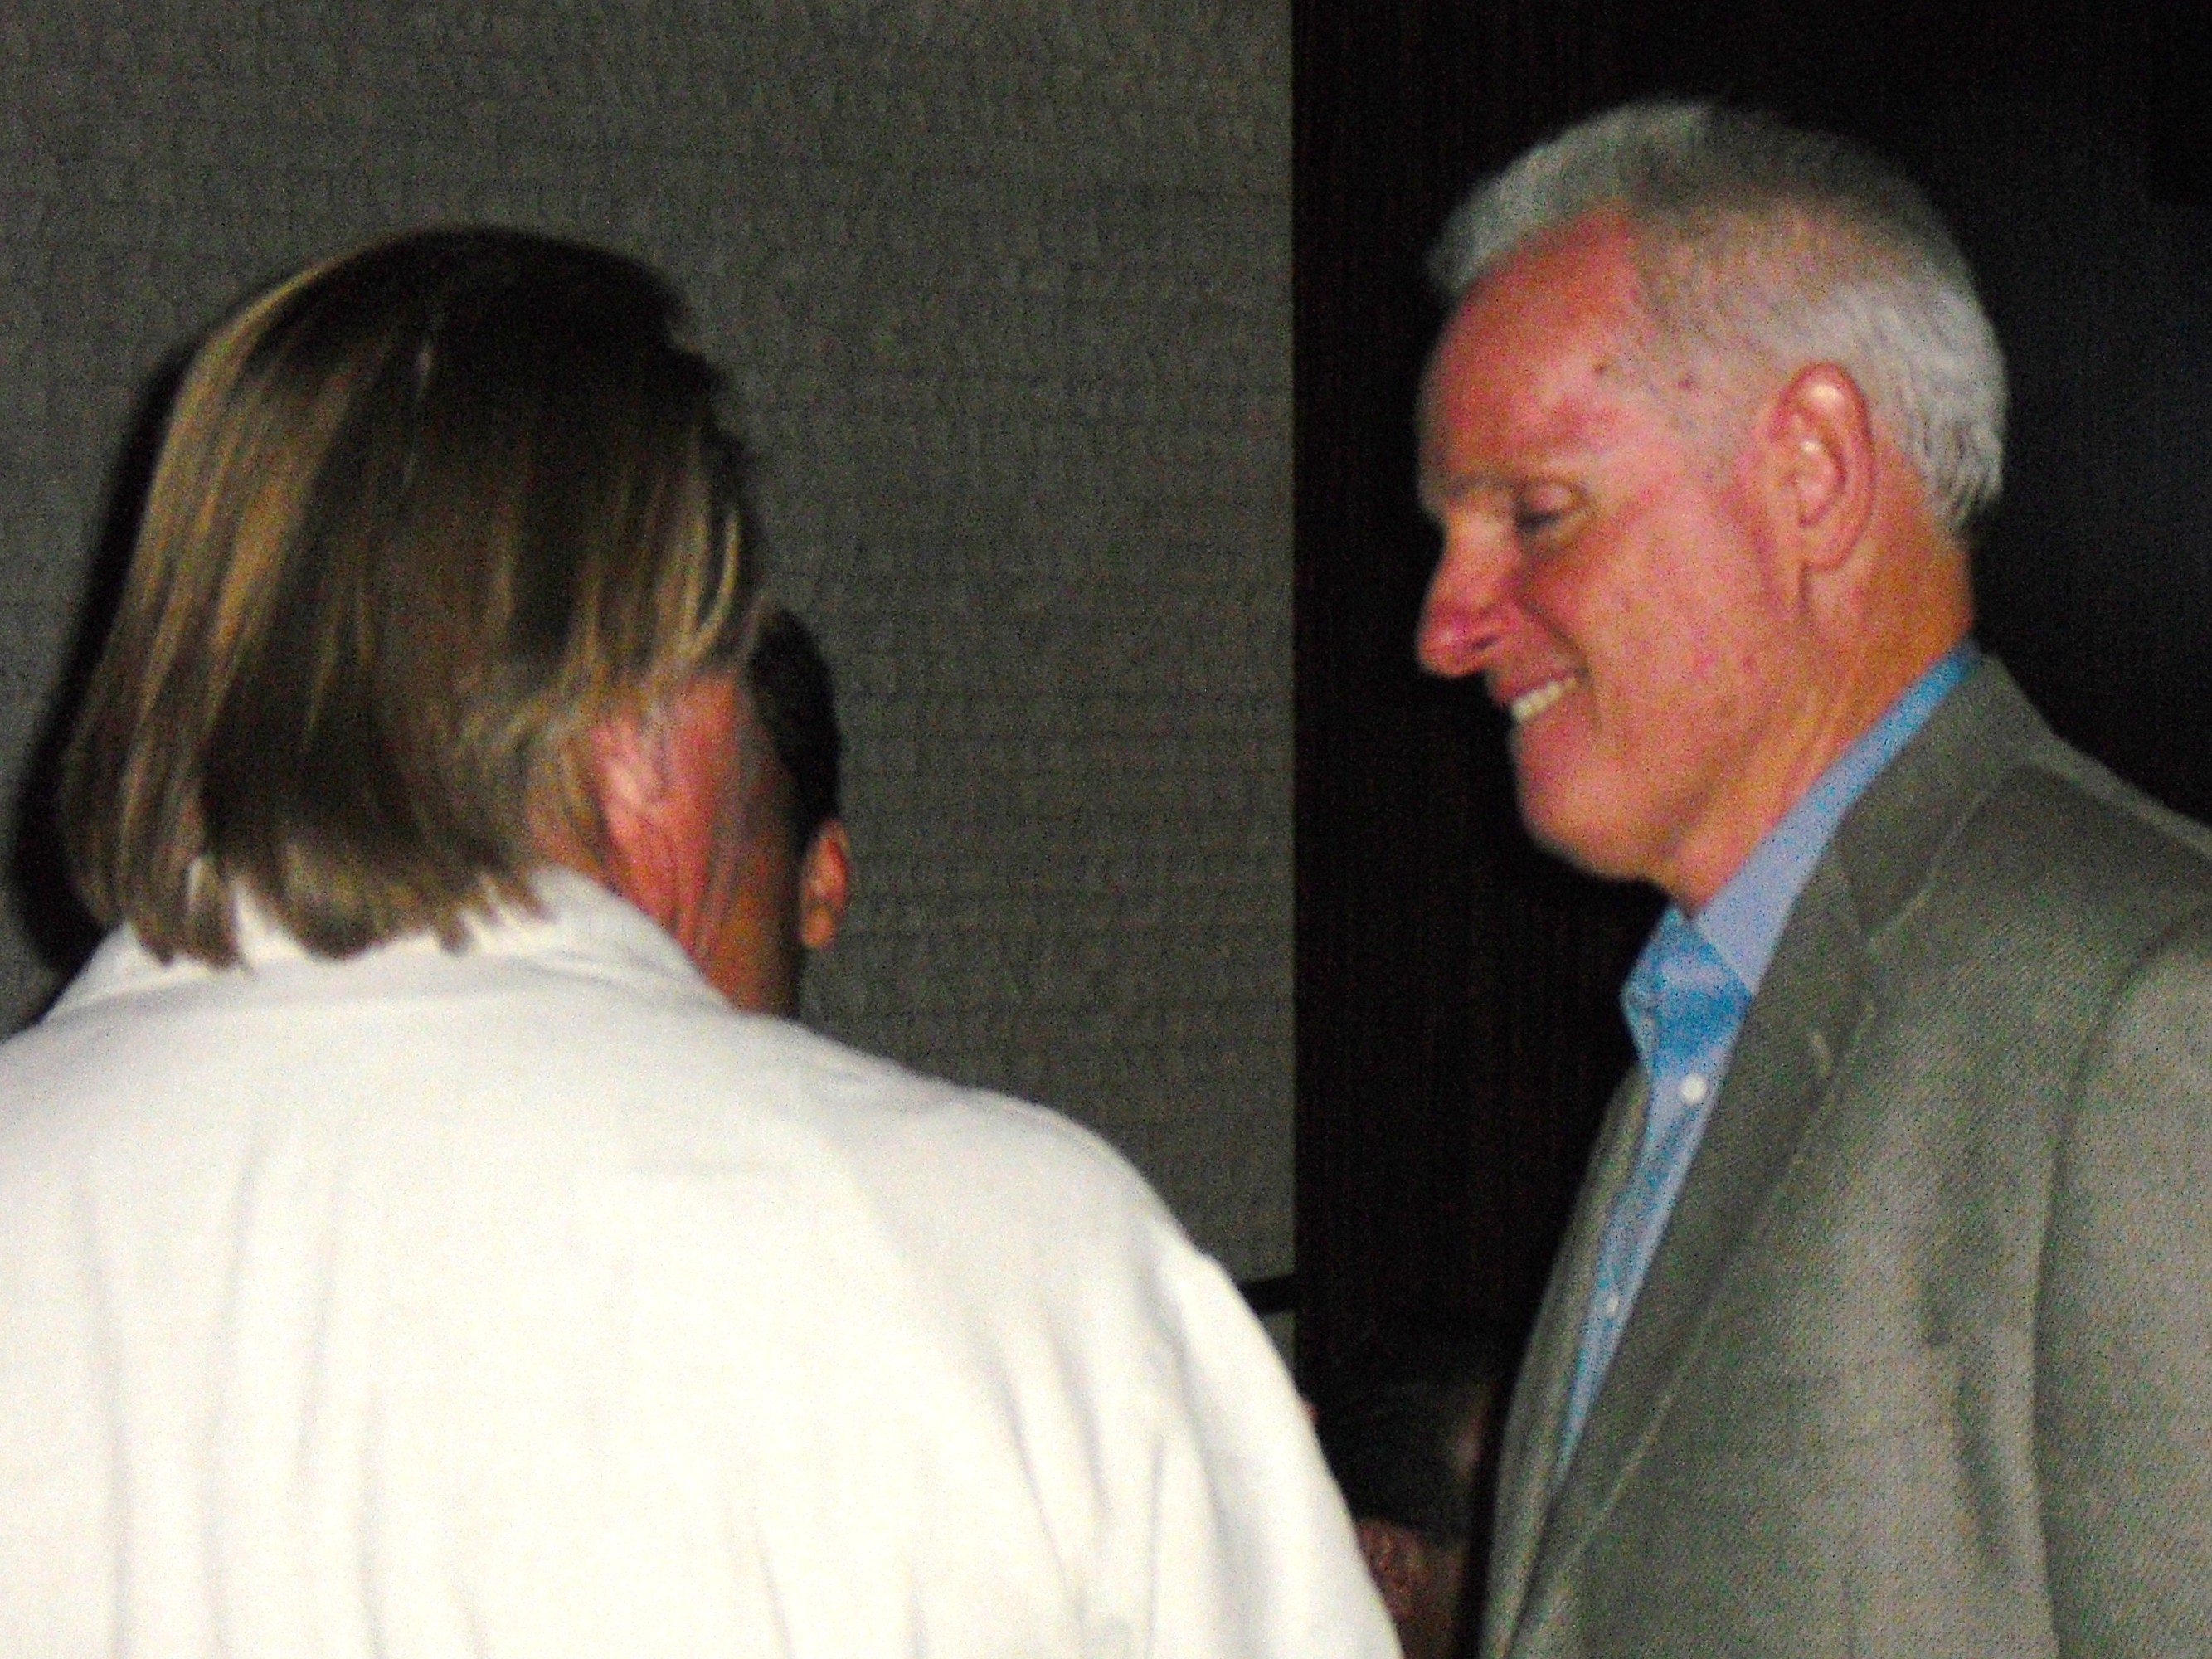 Congratulations John Lewis and Matt Cunningham. Democrat Tom Daly, a career political hack, is now in prime position to run for Supervisor Bill Campbell's seat in 2012, when Campbell finally […]